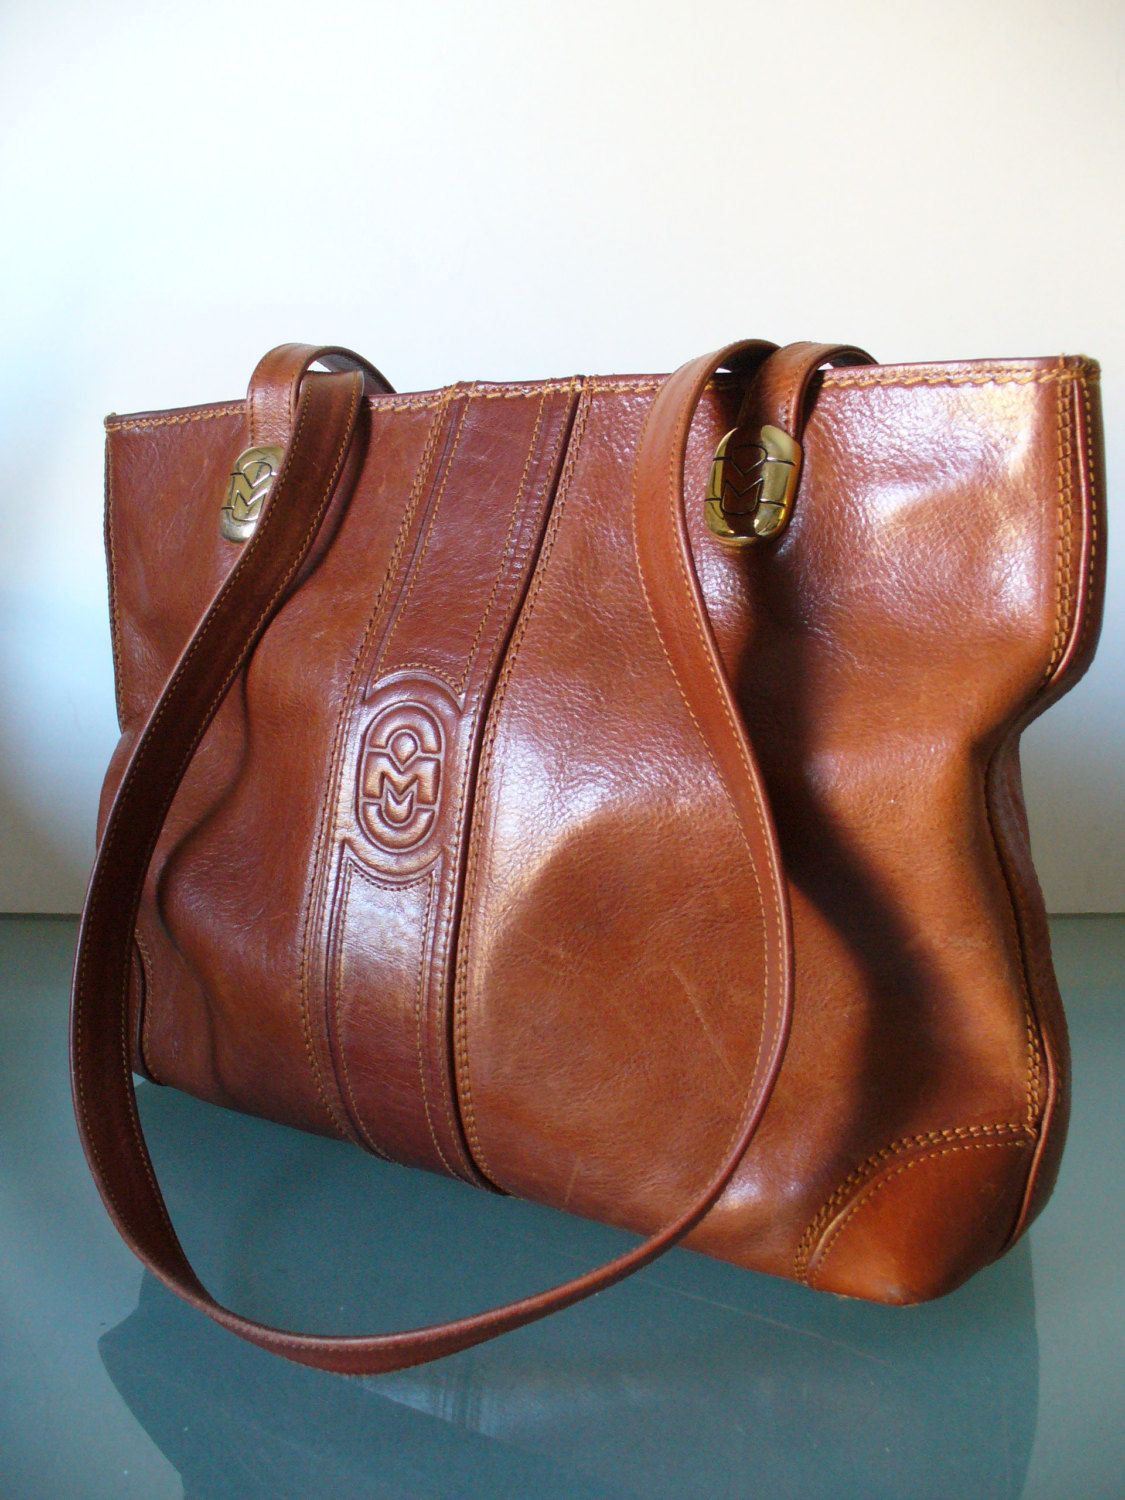 Made in Italy Marino Orlandi Cognac Leather Tote Bag by EurotrashItaly on  Etsy 85ee922c67f09